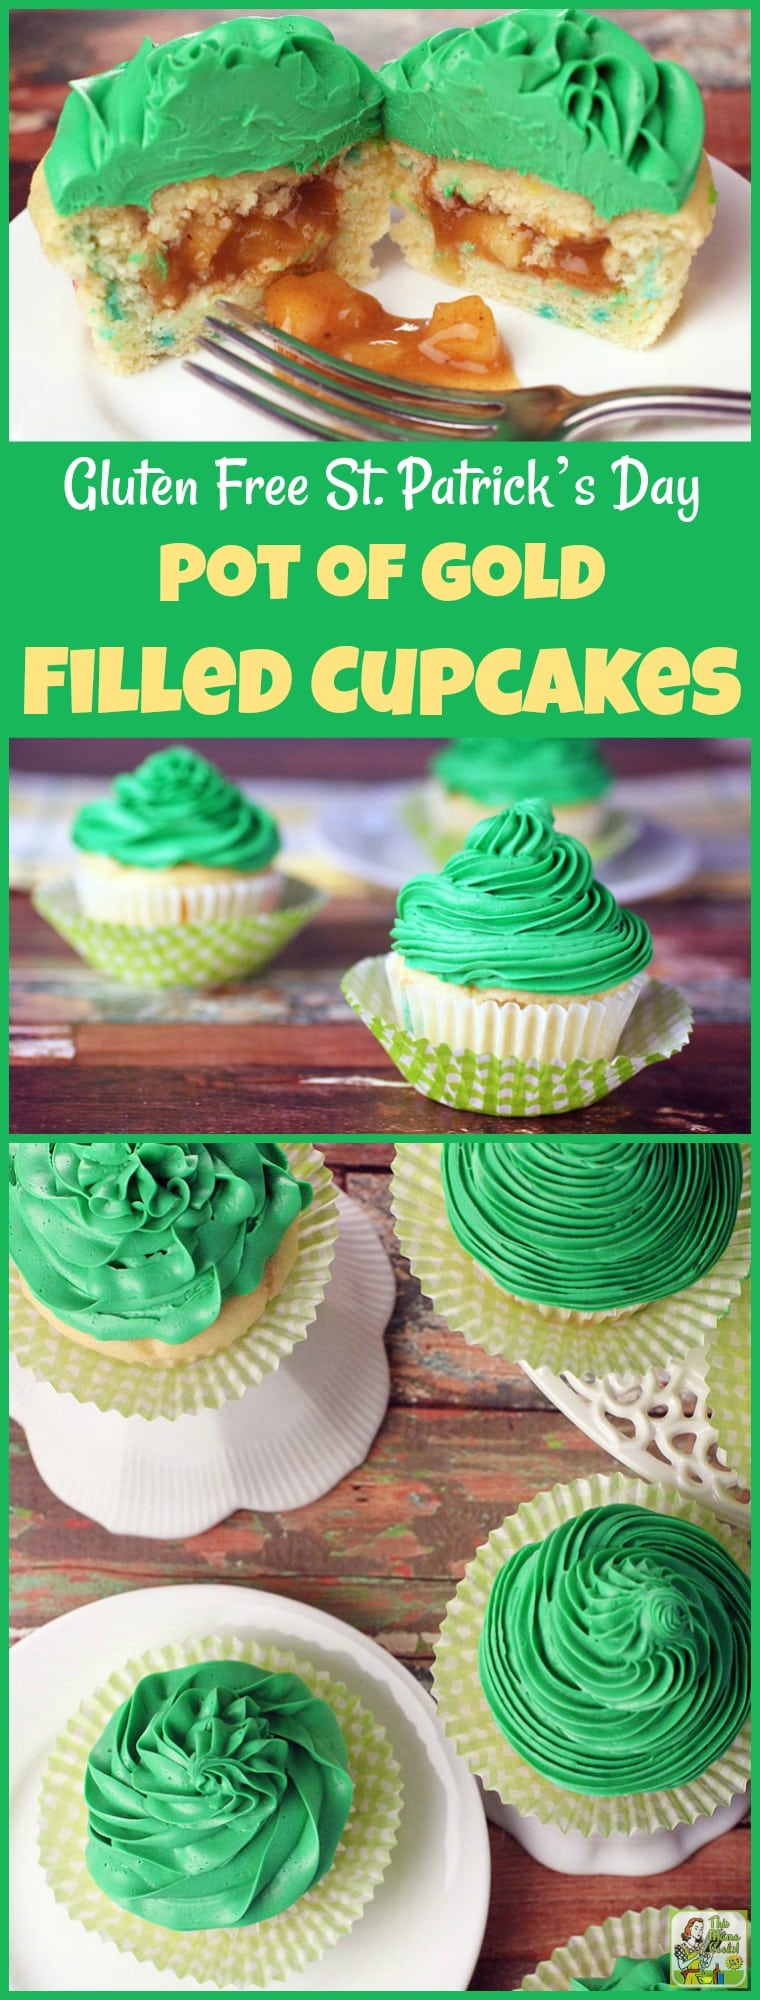 Making this Gluten Free St. Patrick's Day Pot of Gold Filled Cupcakes recipe is easier than you think. This gluten free cupcake recipe uses box mix and frosting from the store. The apple pie filling can be made on your stovetop in less than 30 minutes. Use this cupcake filing technique for other holidays besides St. Patrick's Day when you need a fun gluten-free dessert! #stpatricksday #glutenfree #applepiefilling #baking #bakingrecipes #cupcakes #cupcakerecipes #cupcakerecipeseasy #desserts #dessertrecipes #dessertideas